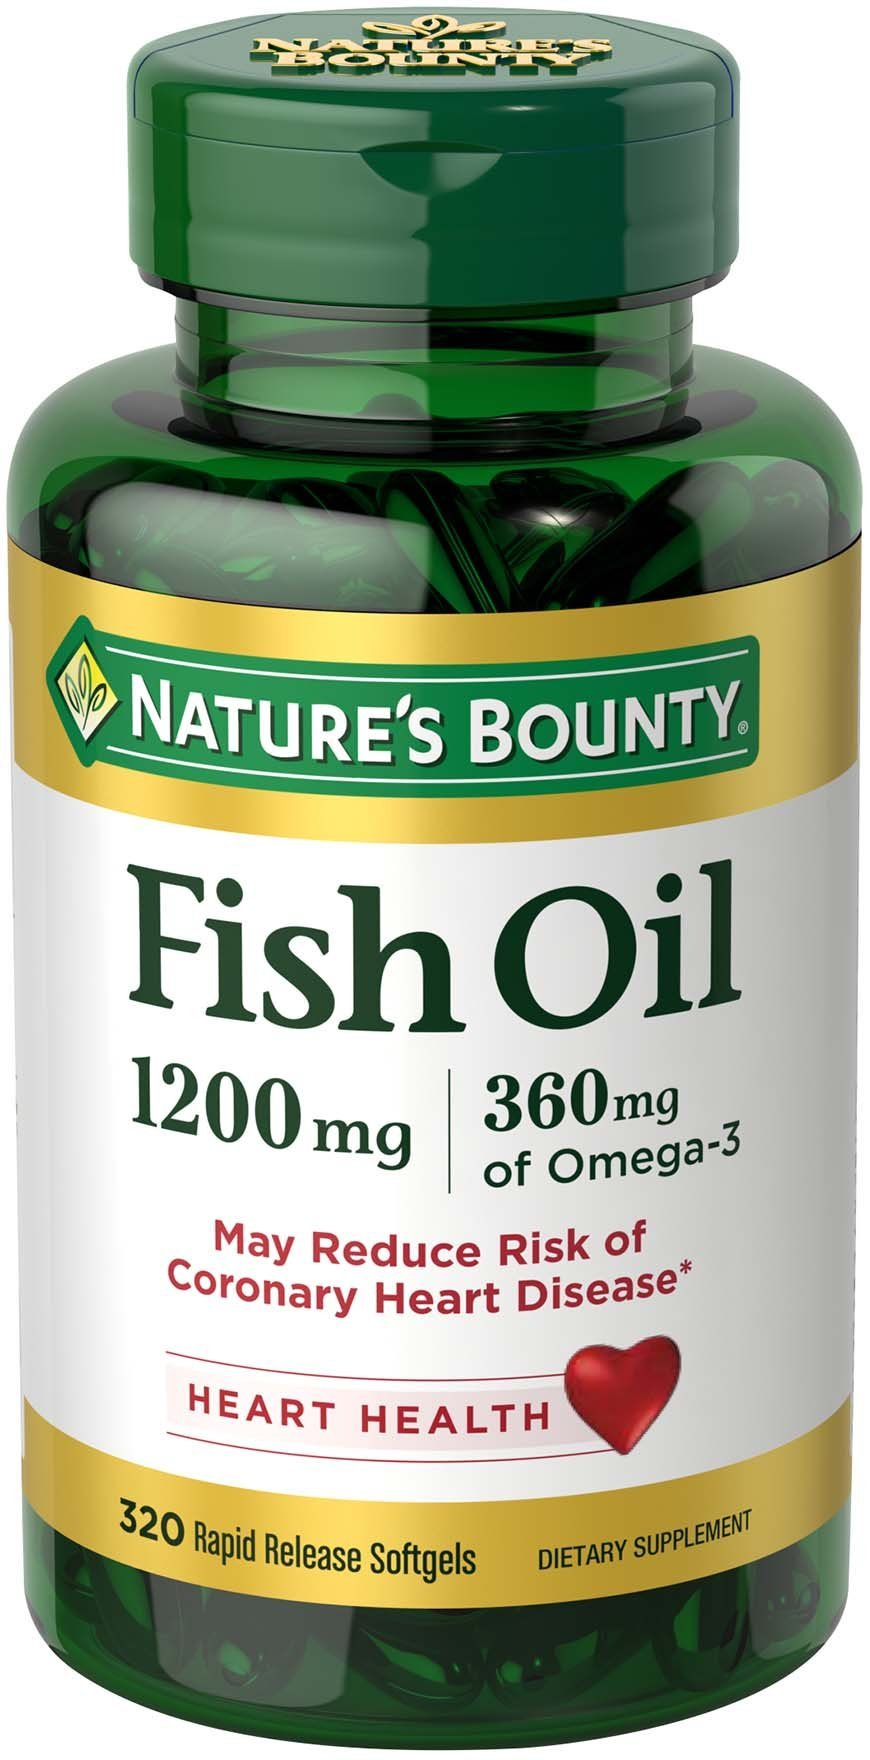 Nature's Bounty Omega-3 Fish Oil 1200 mg Softgels 320 ea by Nature's Bounty